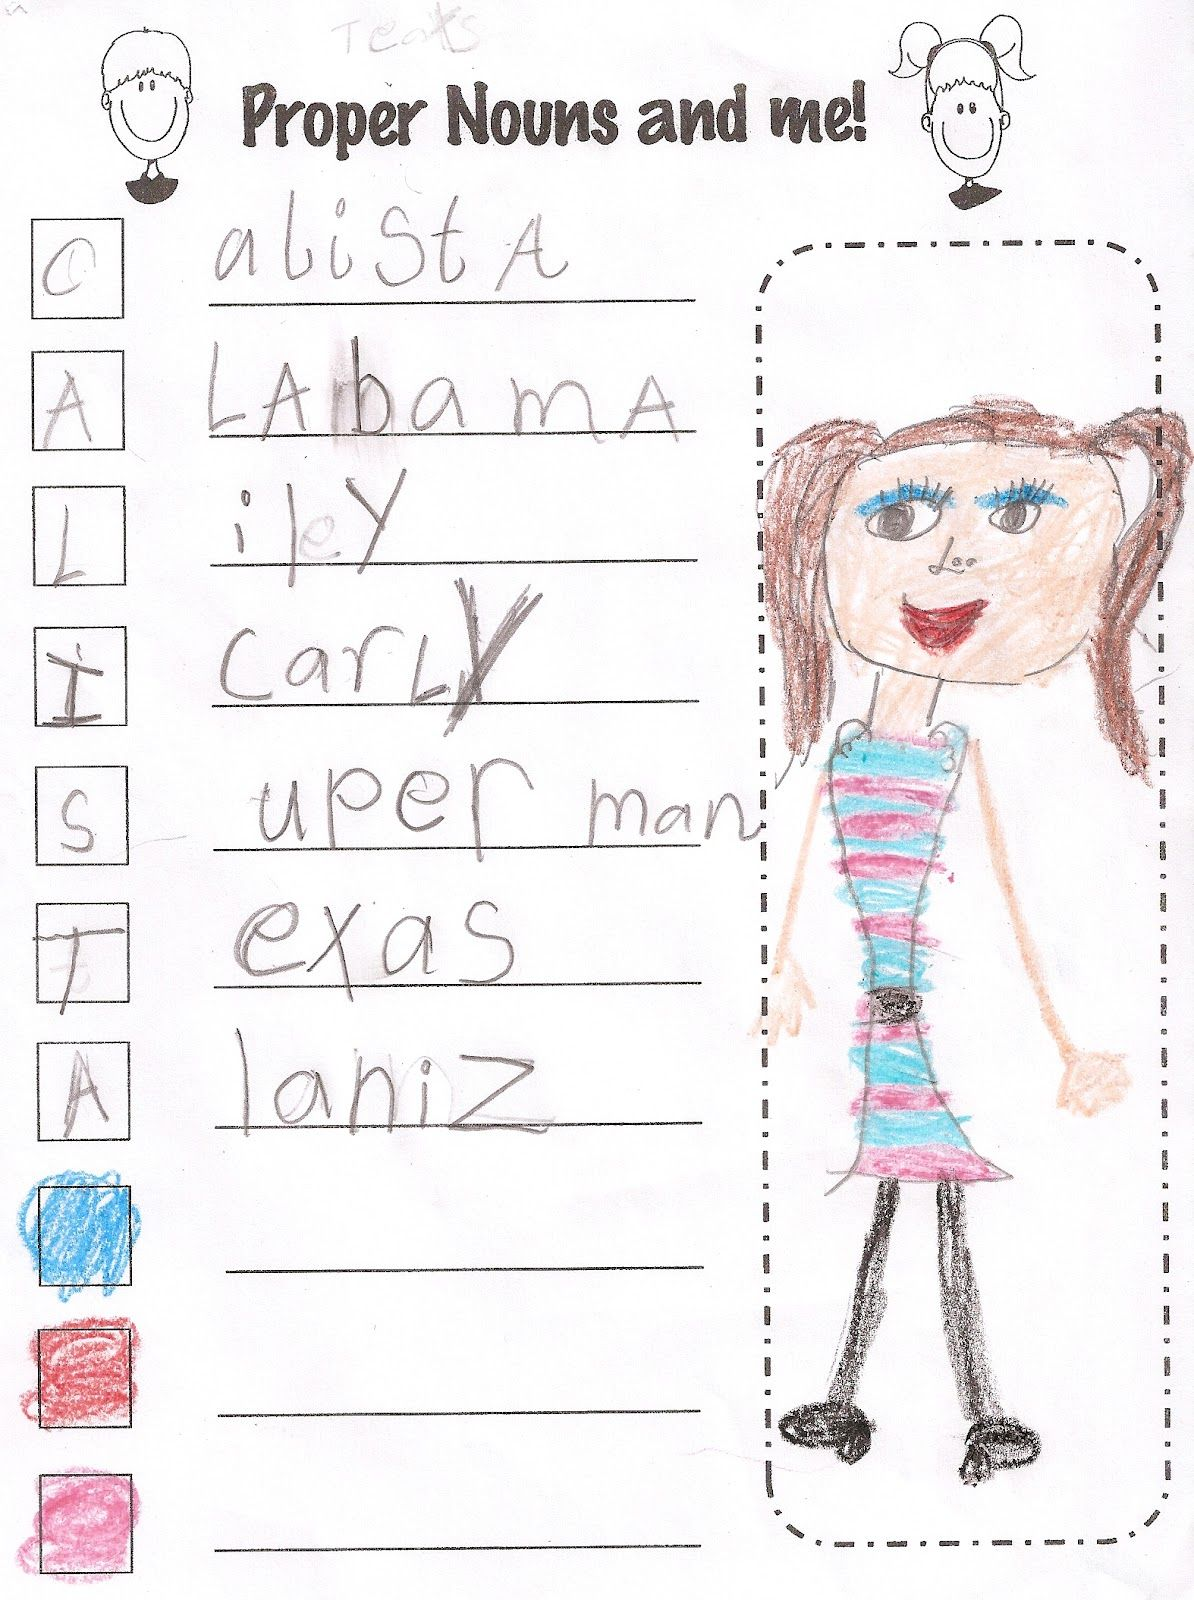 Totally Terrific In Texas Proper Nouns And Me Precious Acrostic Poem